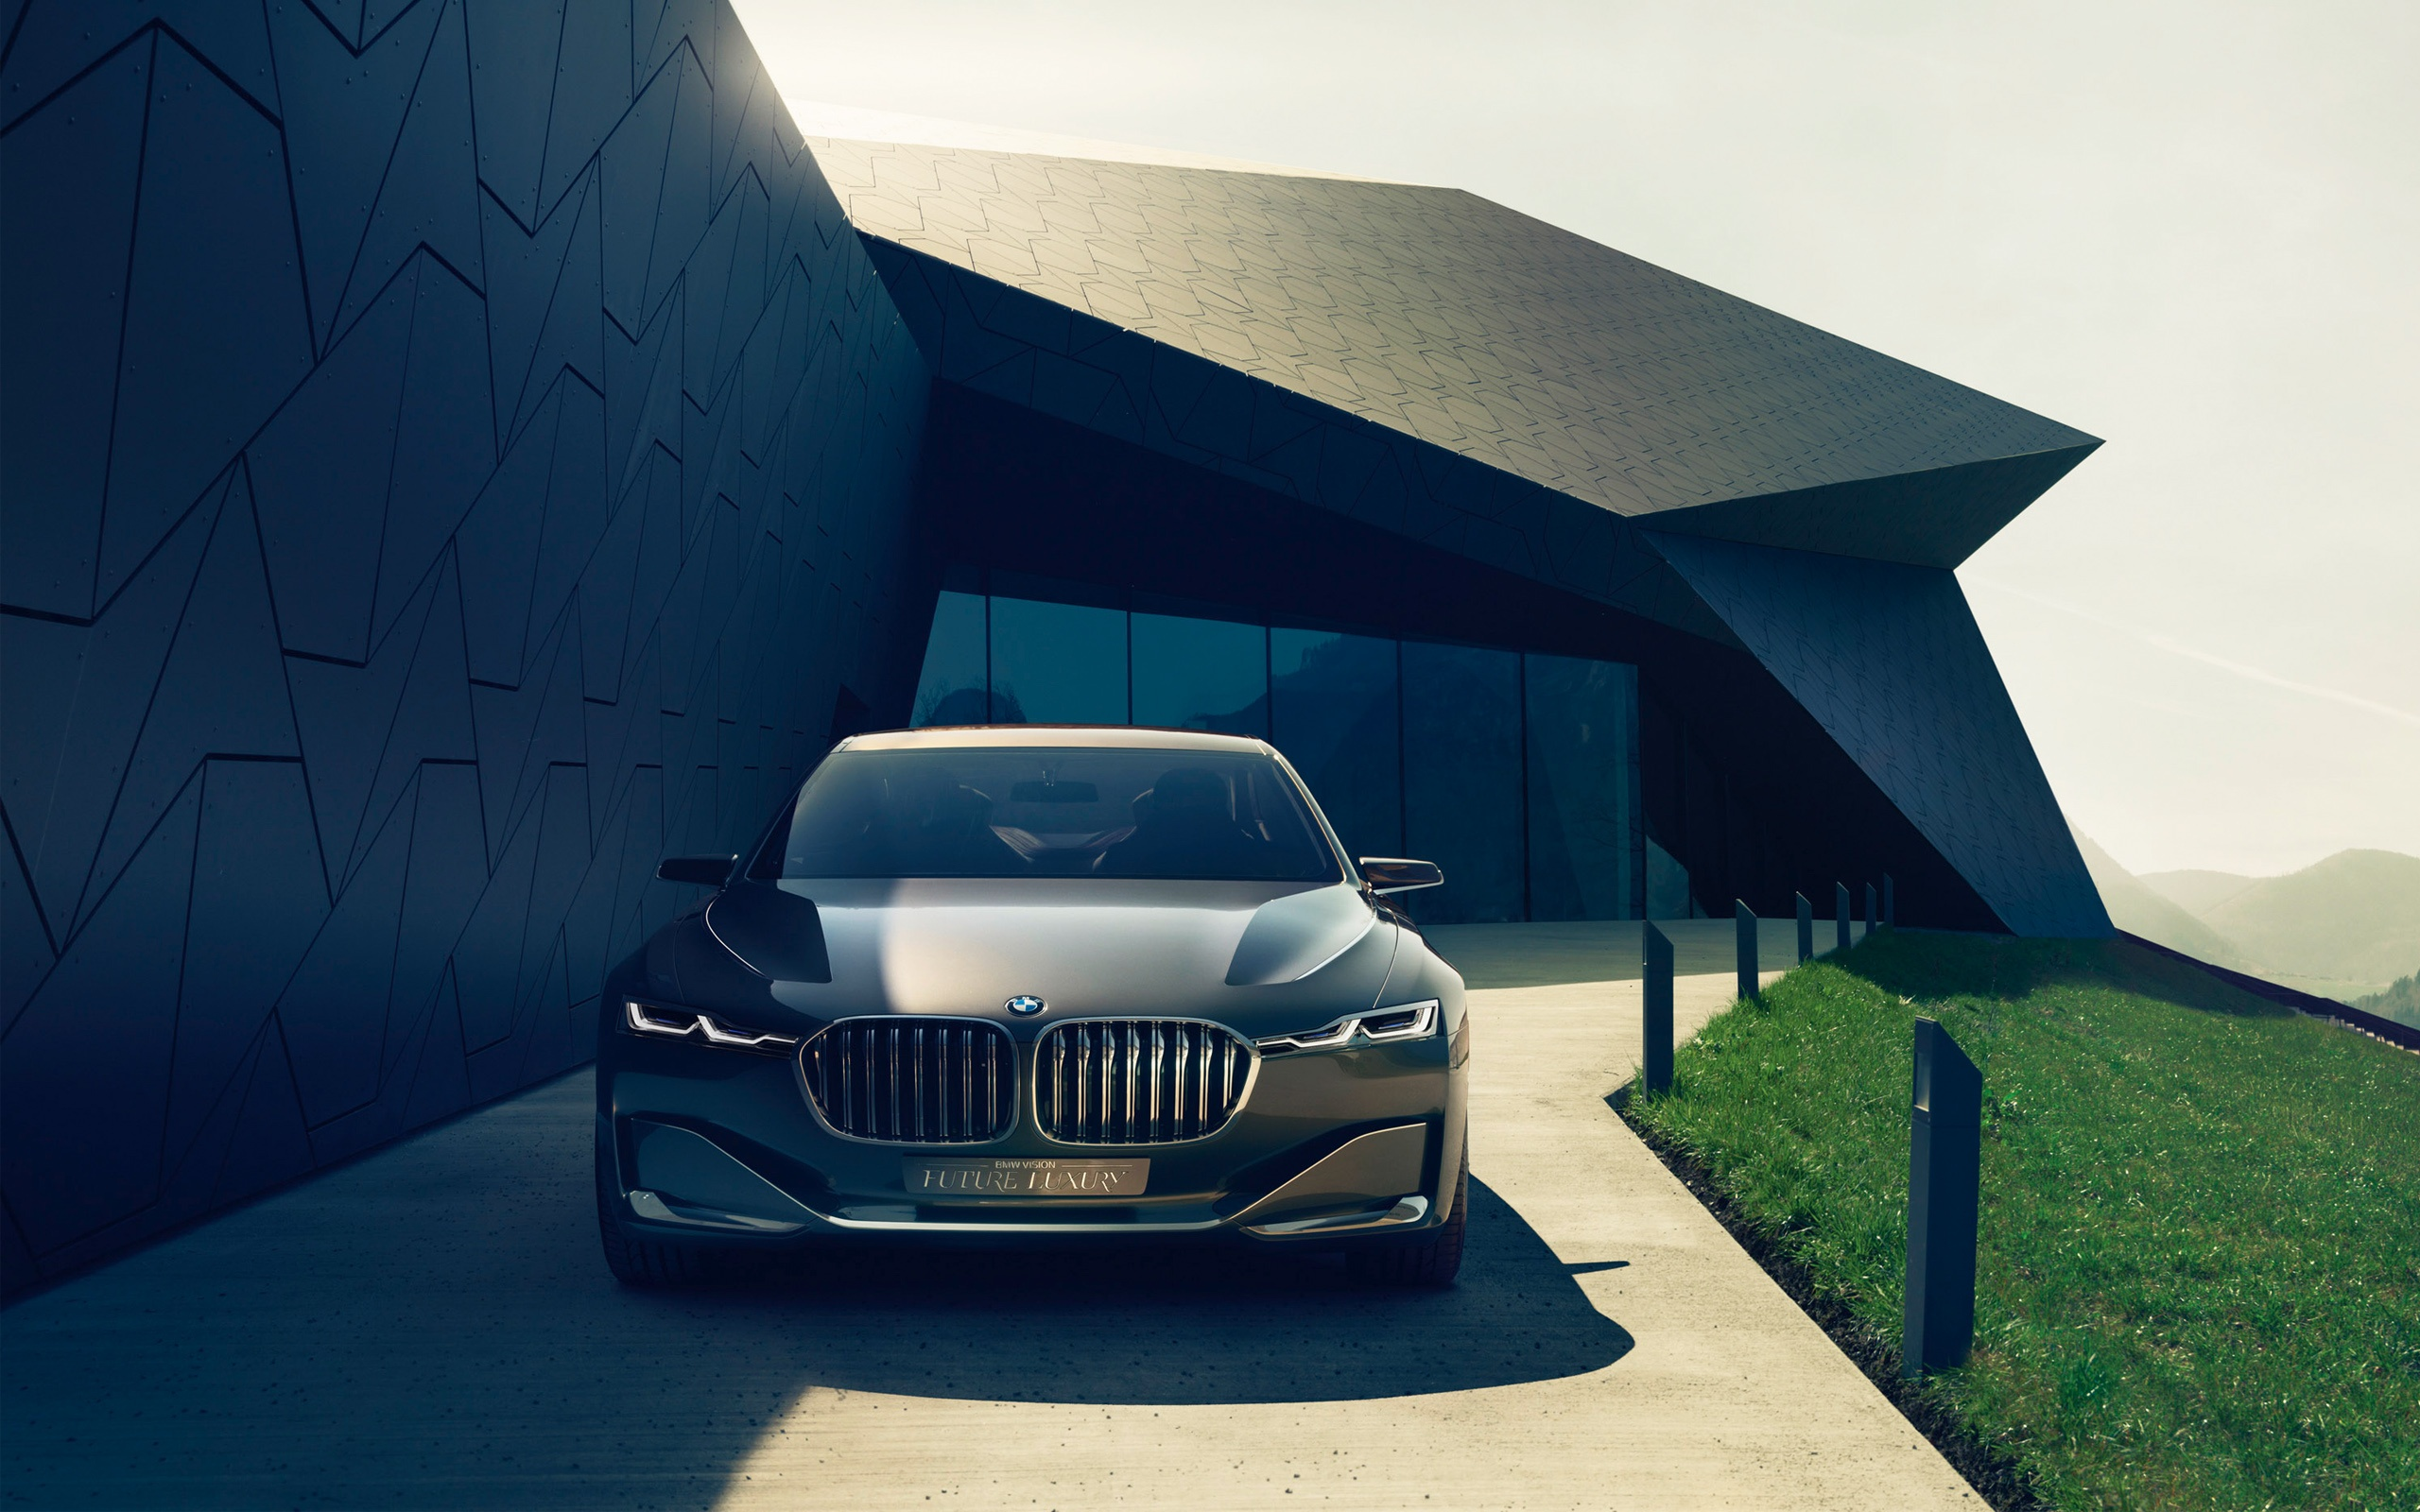 BMW Vision Future Luxury Car Wallpapers HD Wallpapers 2560x1600